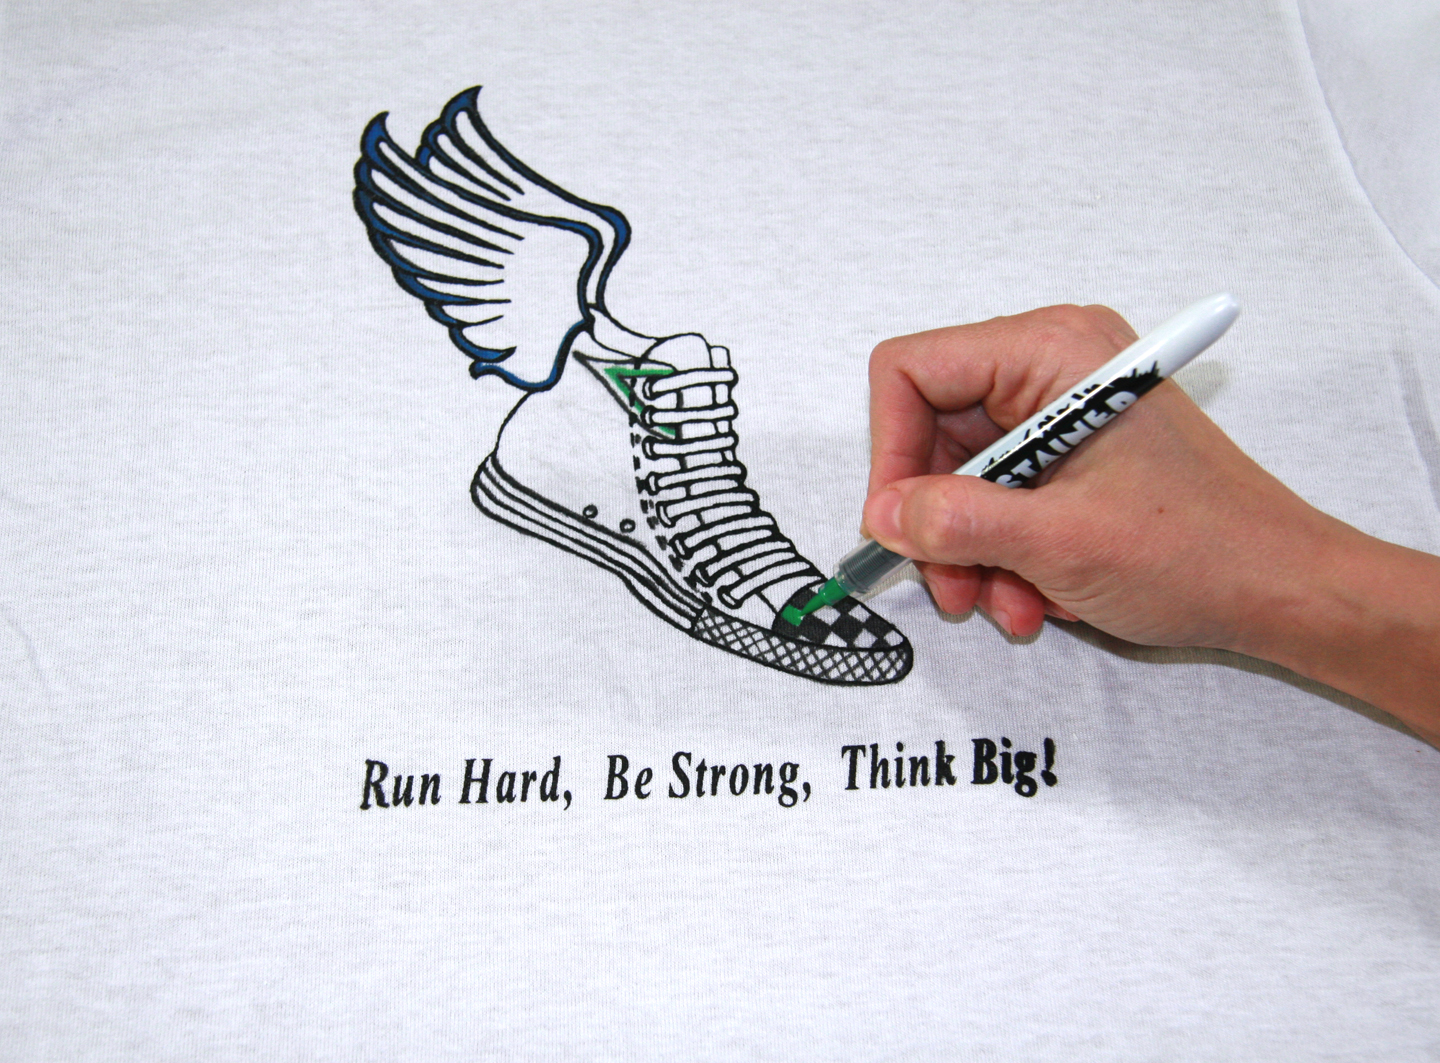 Fill the colors in the printed desing on t-shirt by using Stained By Sharpie fabric markers